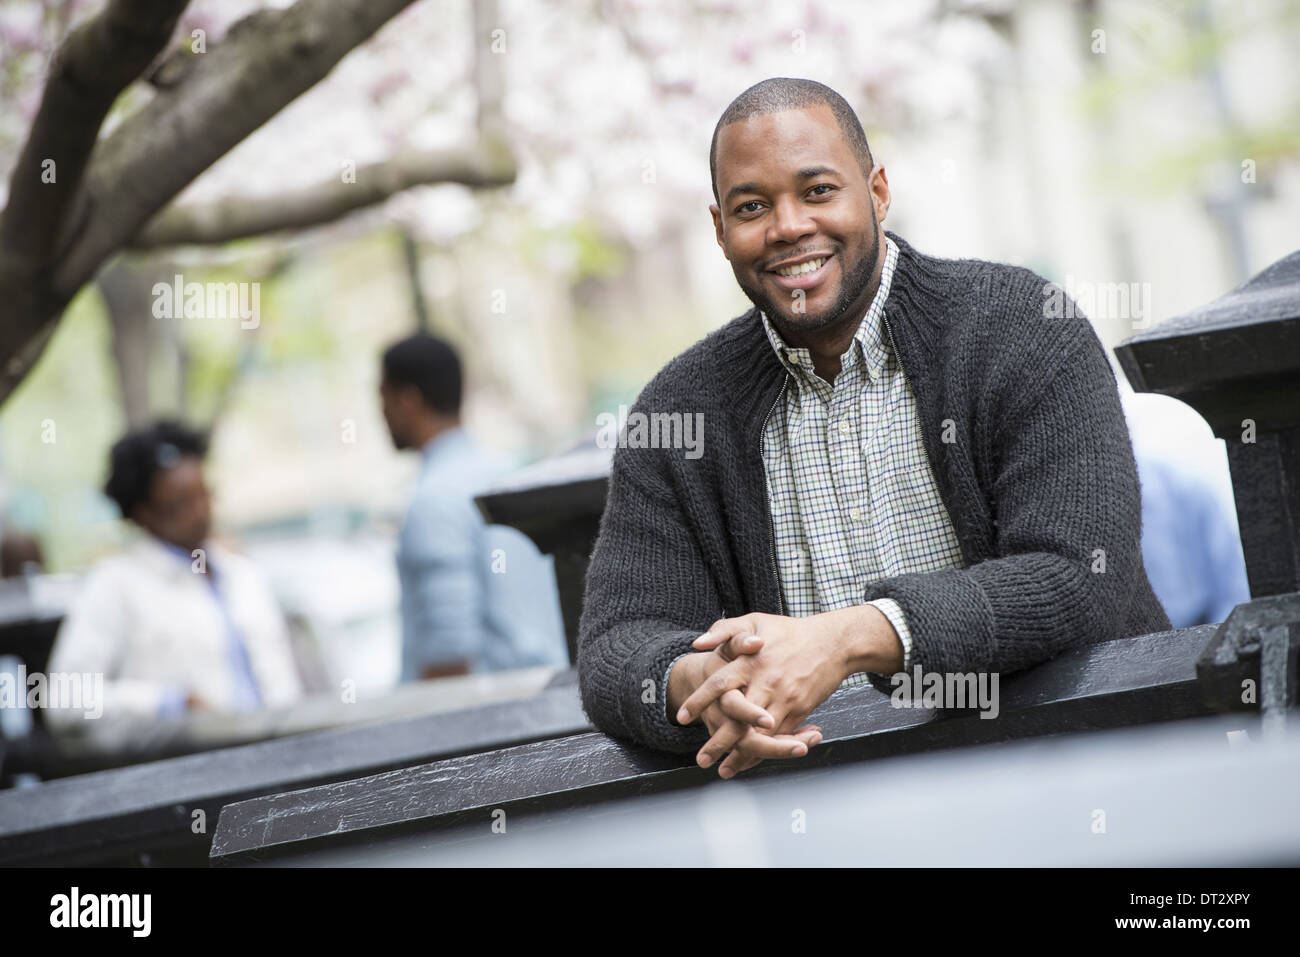 A man seated at a table and two people in the background - Stock Image